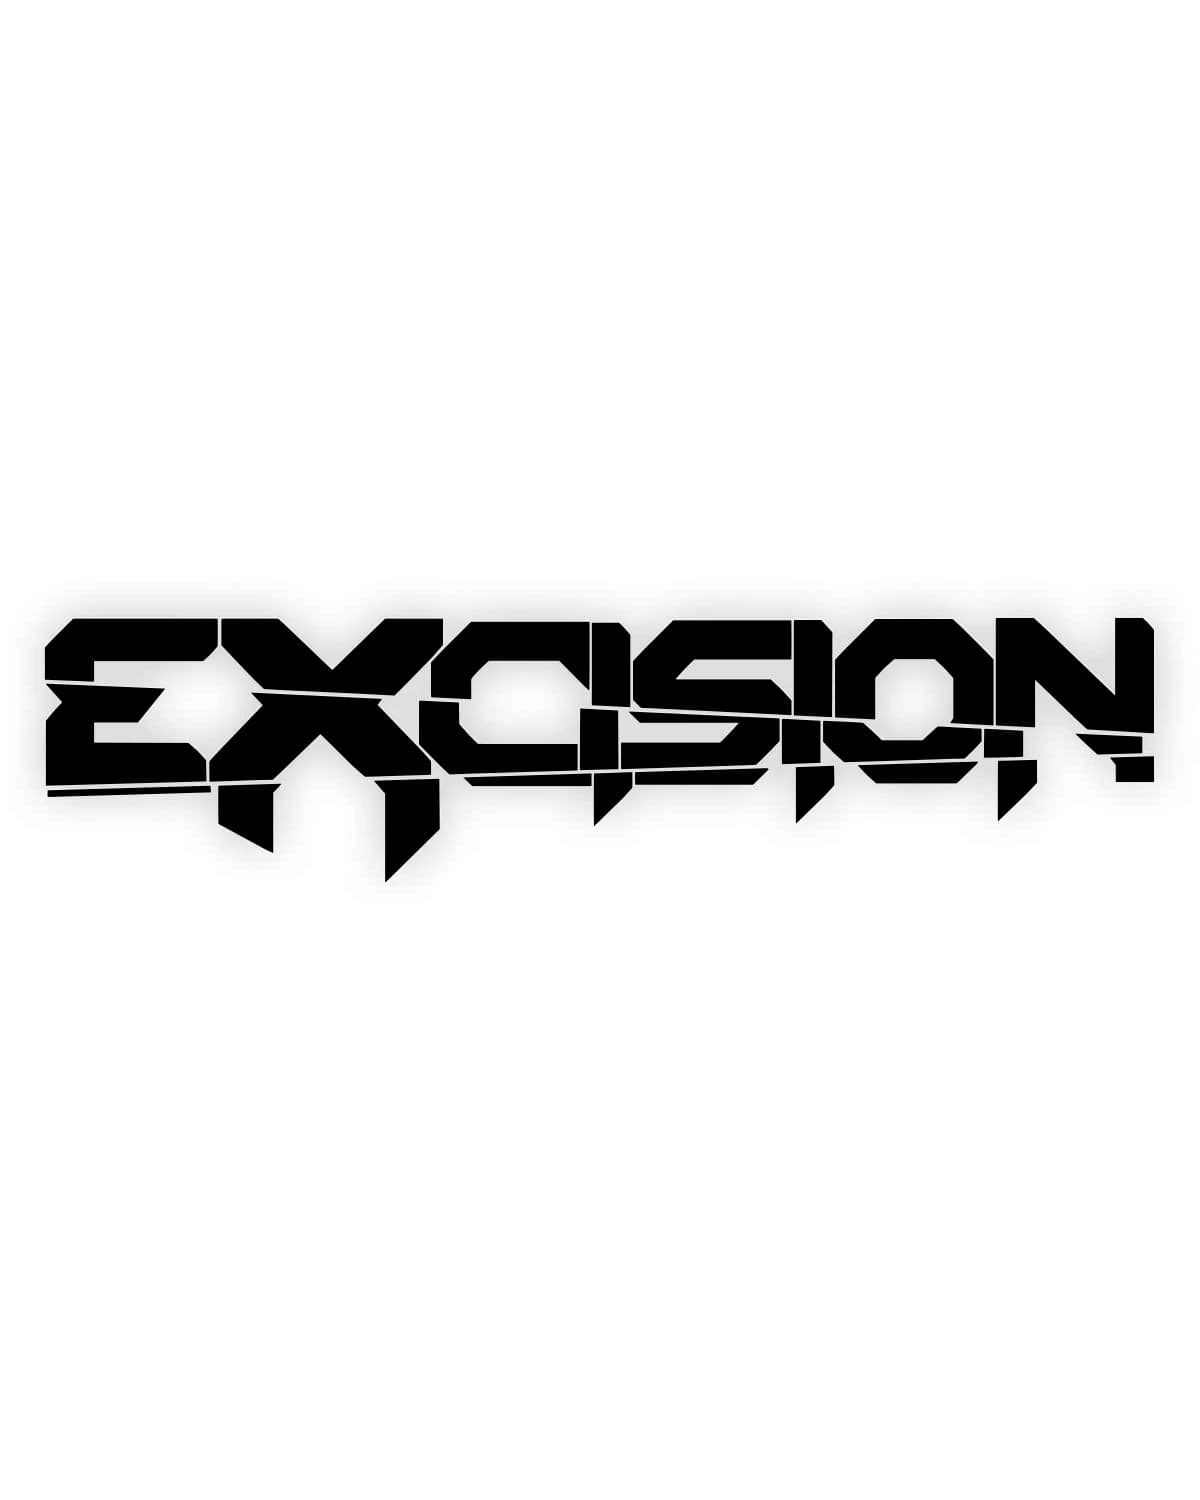 "Excision 'Logo' Vinyl Decal - 30"" x 7"""